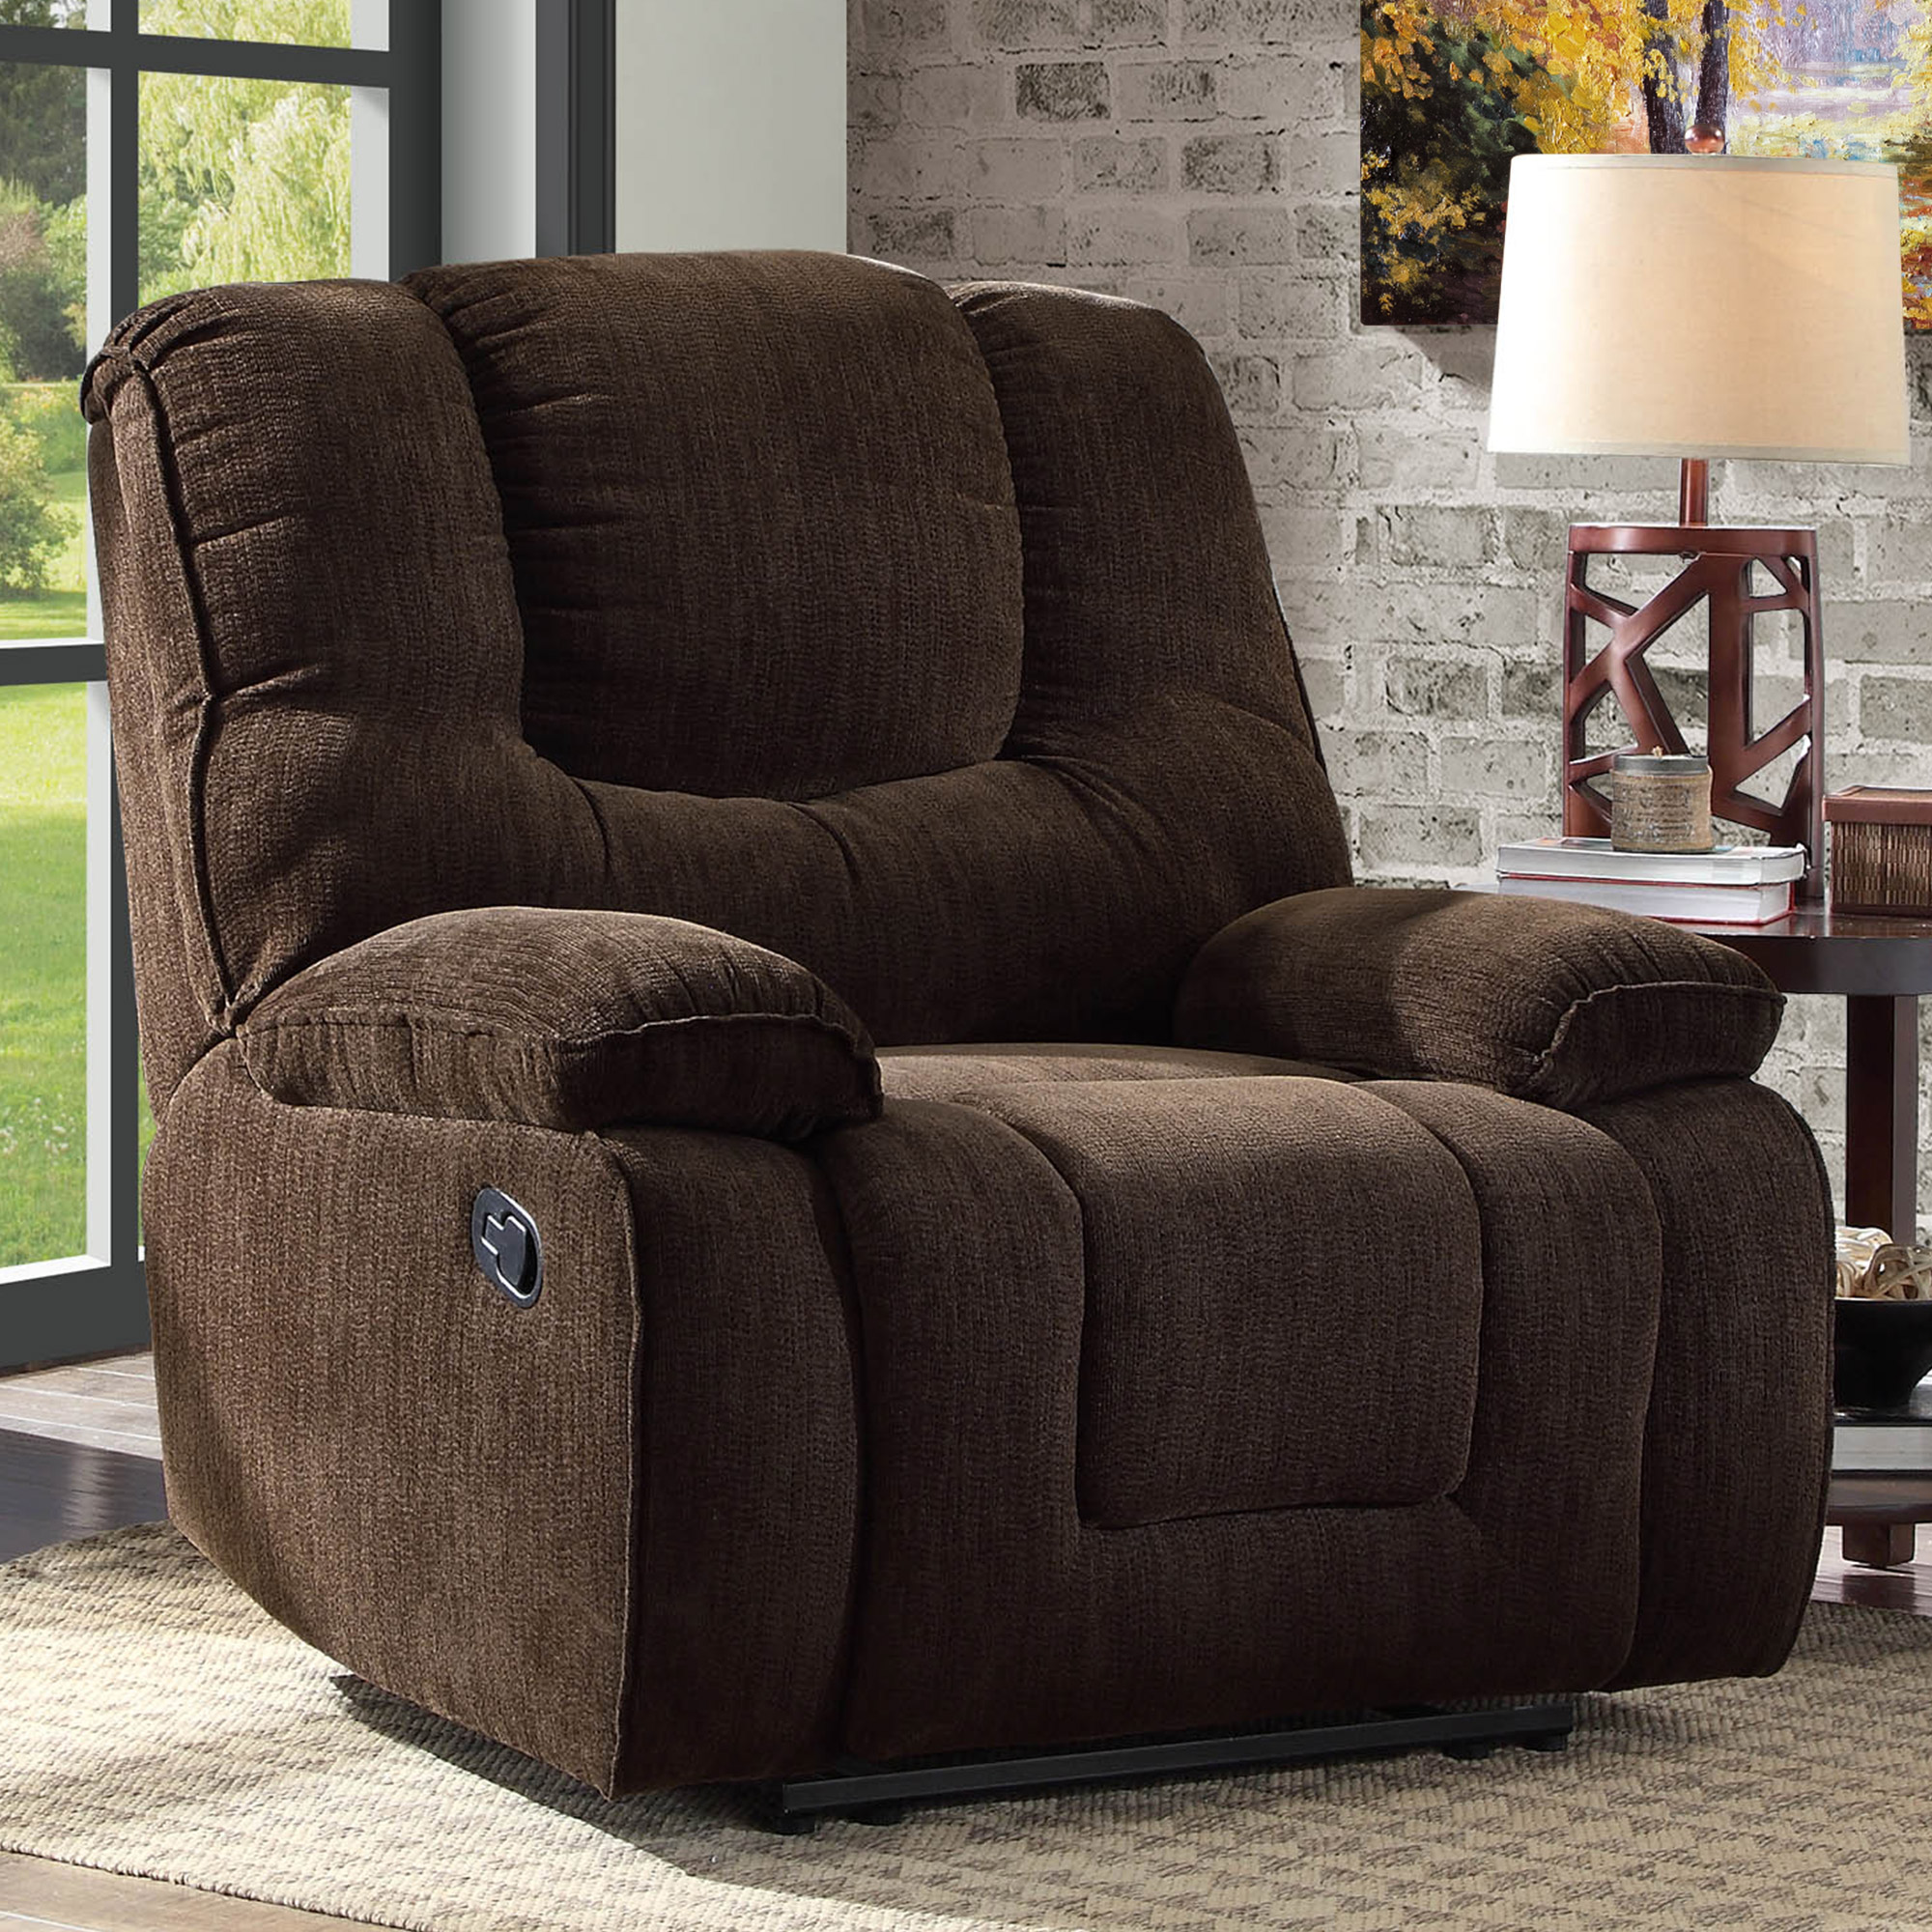 Better Homes And Gardens Big U0026 Tall Recliner With In Arm Storage And USB,